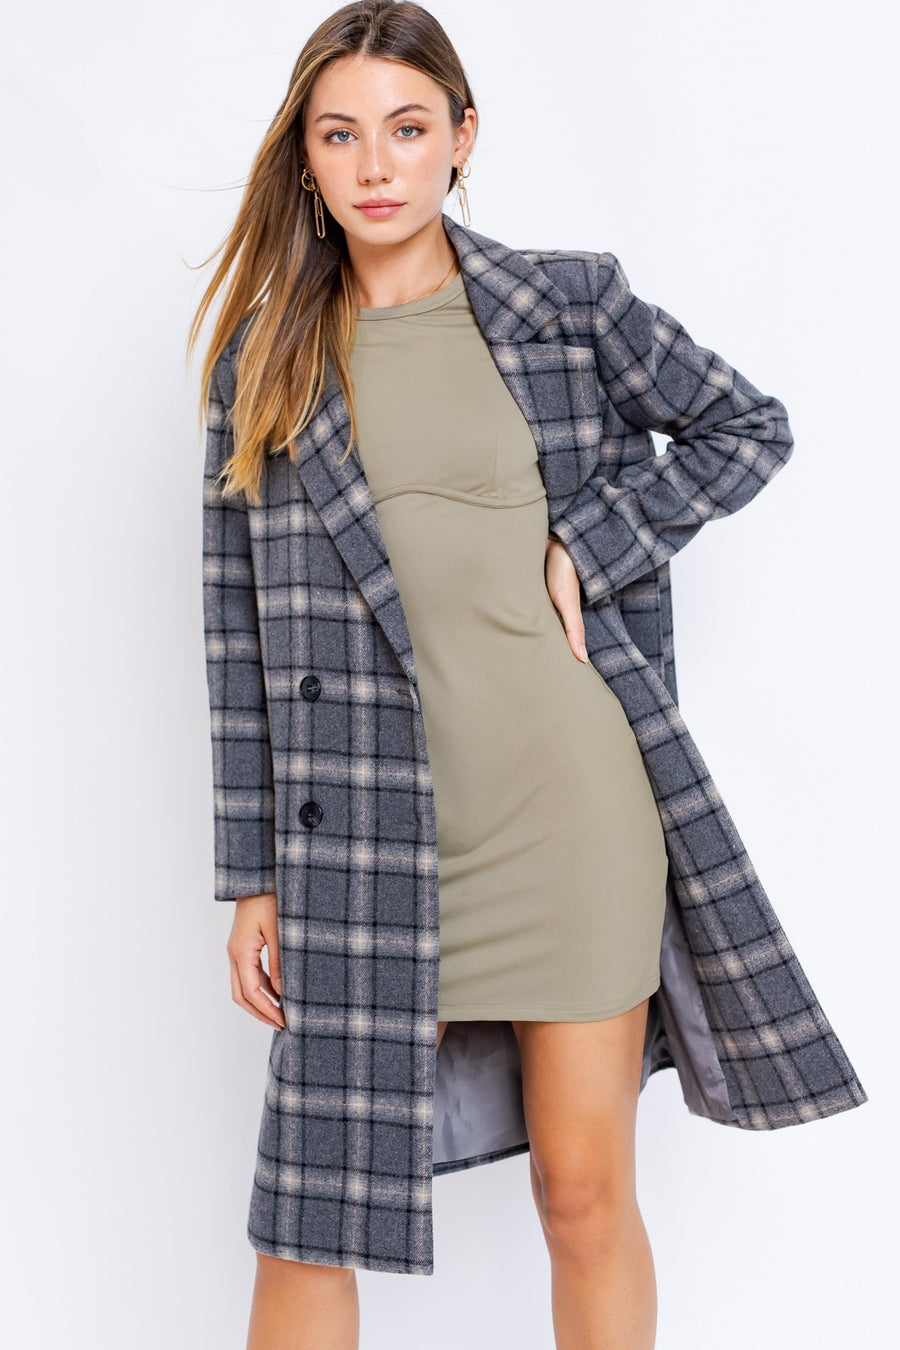 CHARCOAL PLAID JACKET